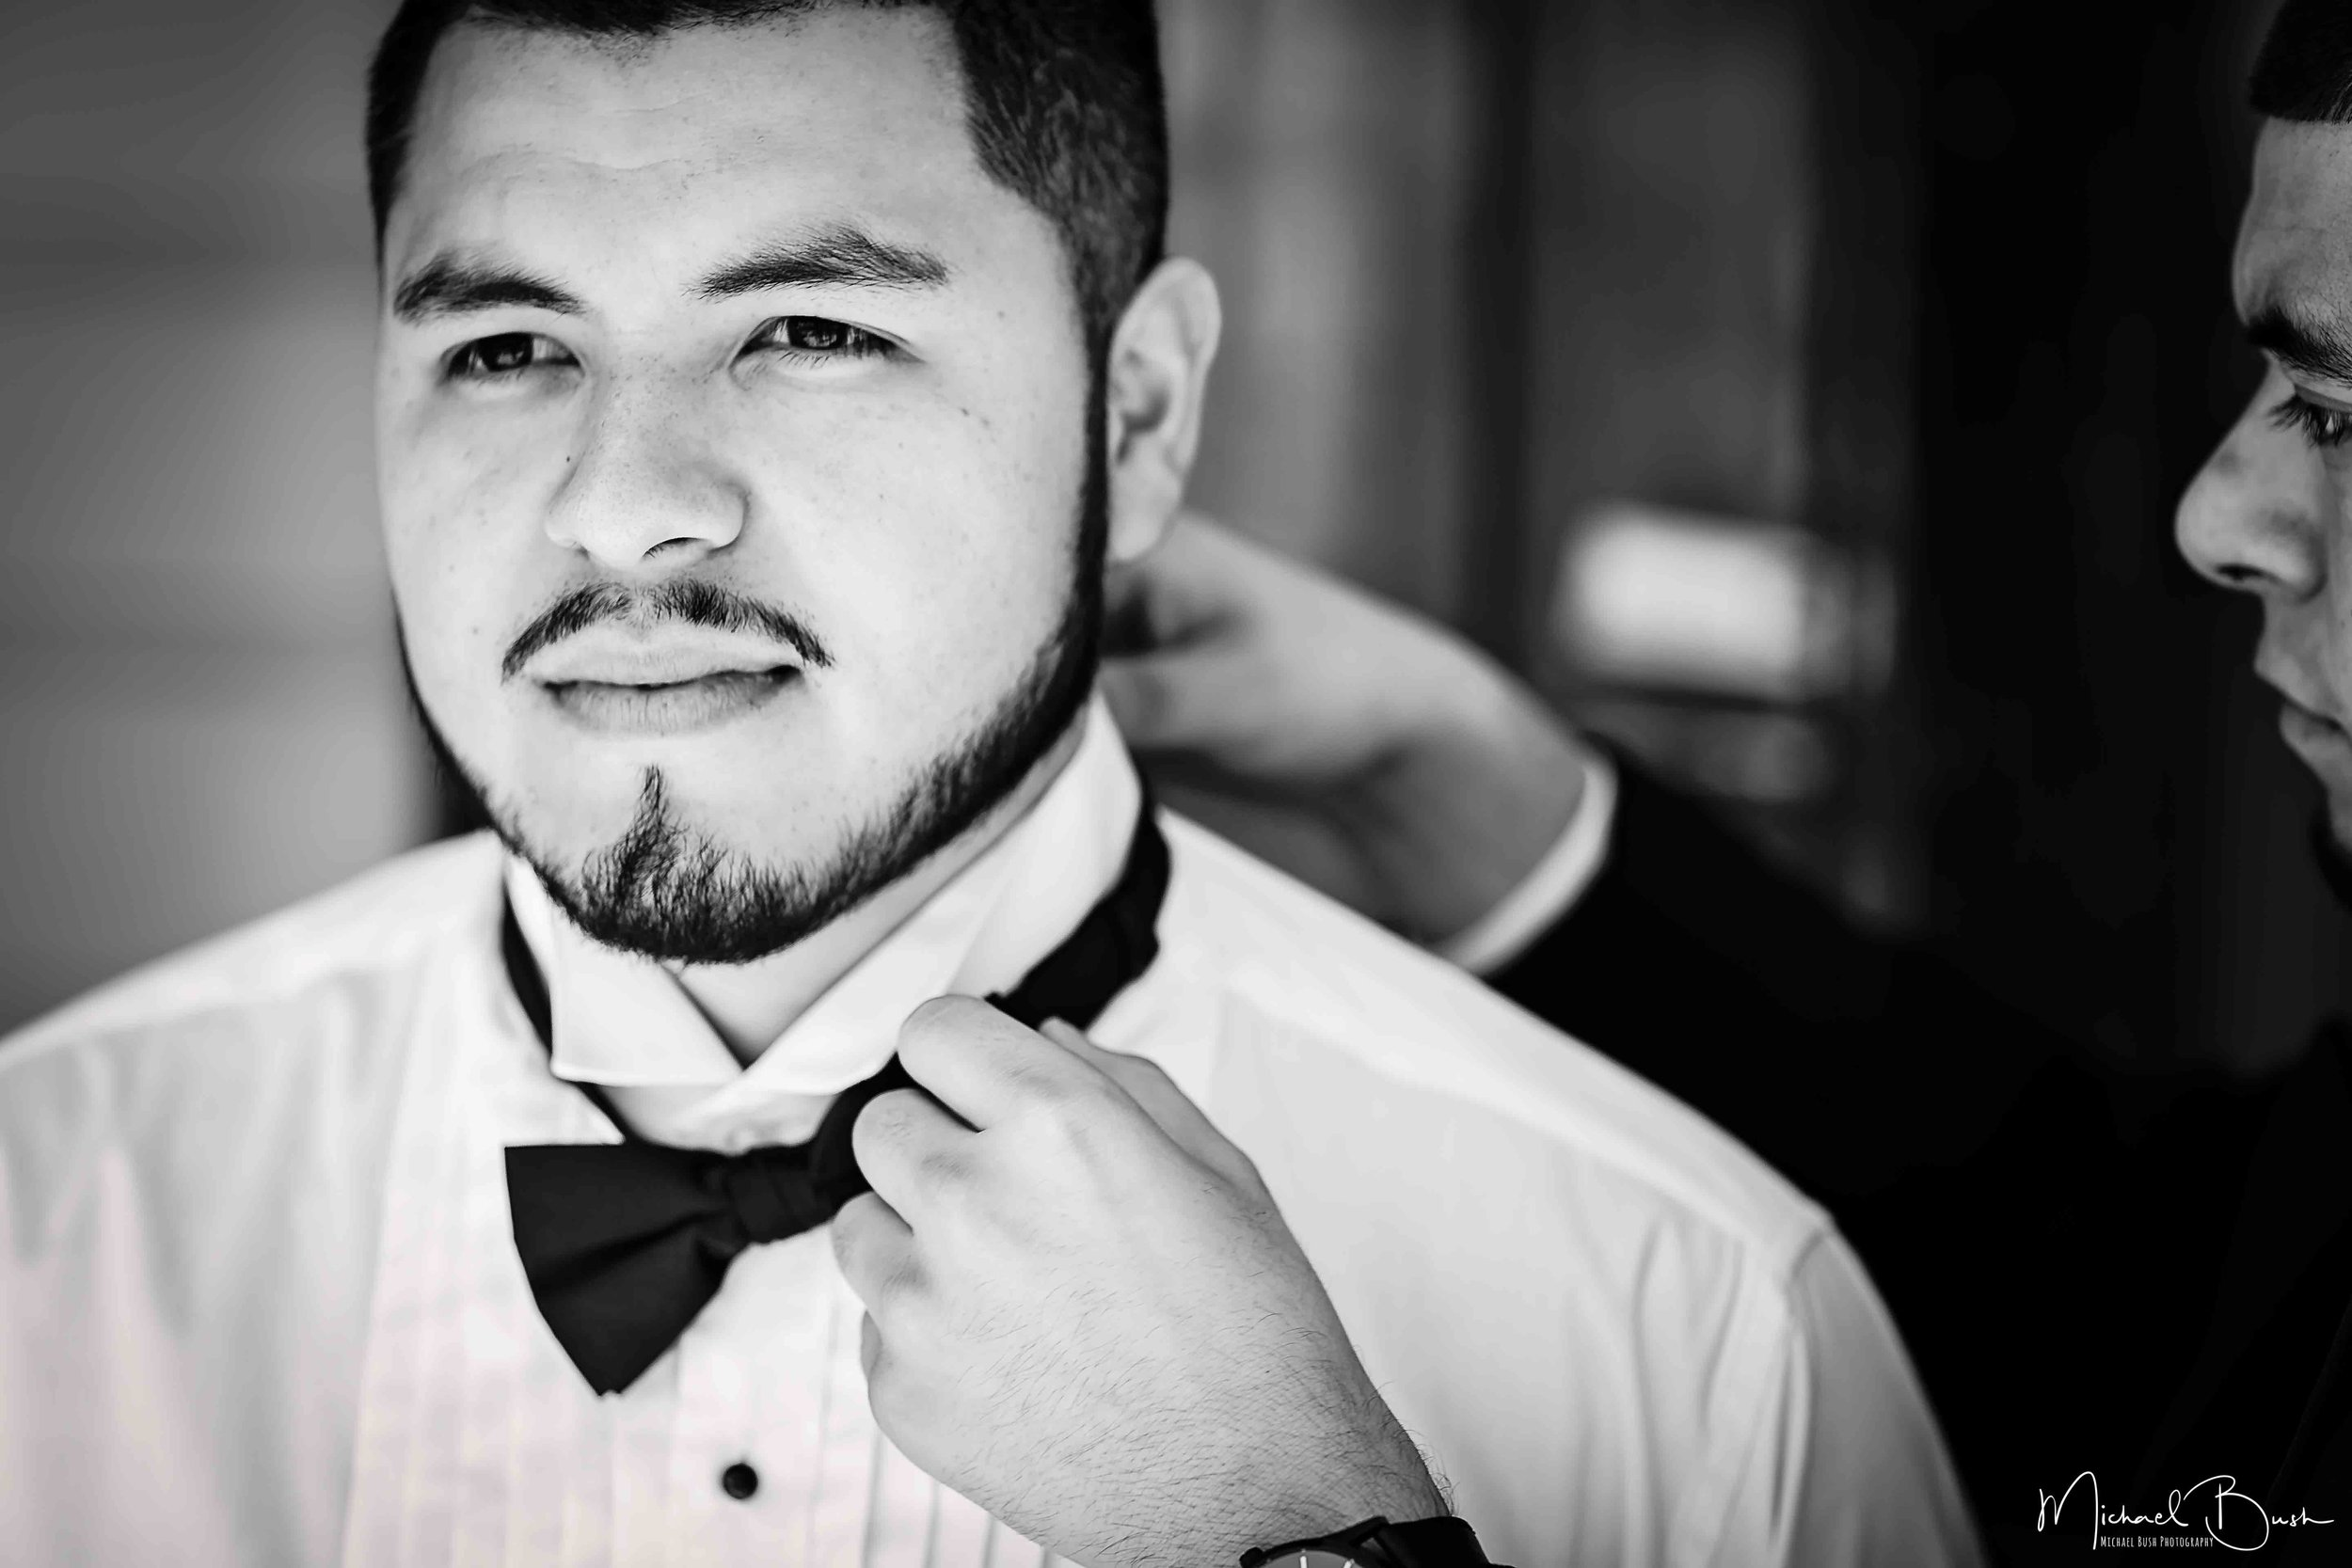 Wedding-Details-Groom-Fort Worth-b&w-Getting Ready-bestman-love-bowtie.jpg